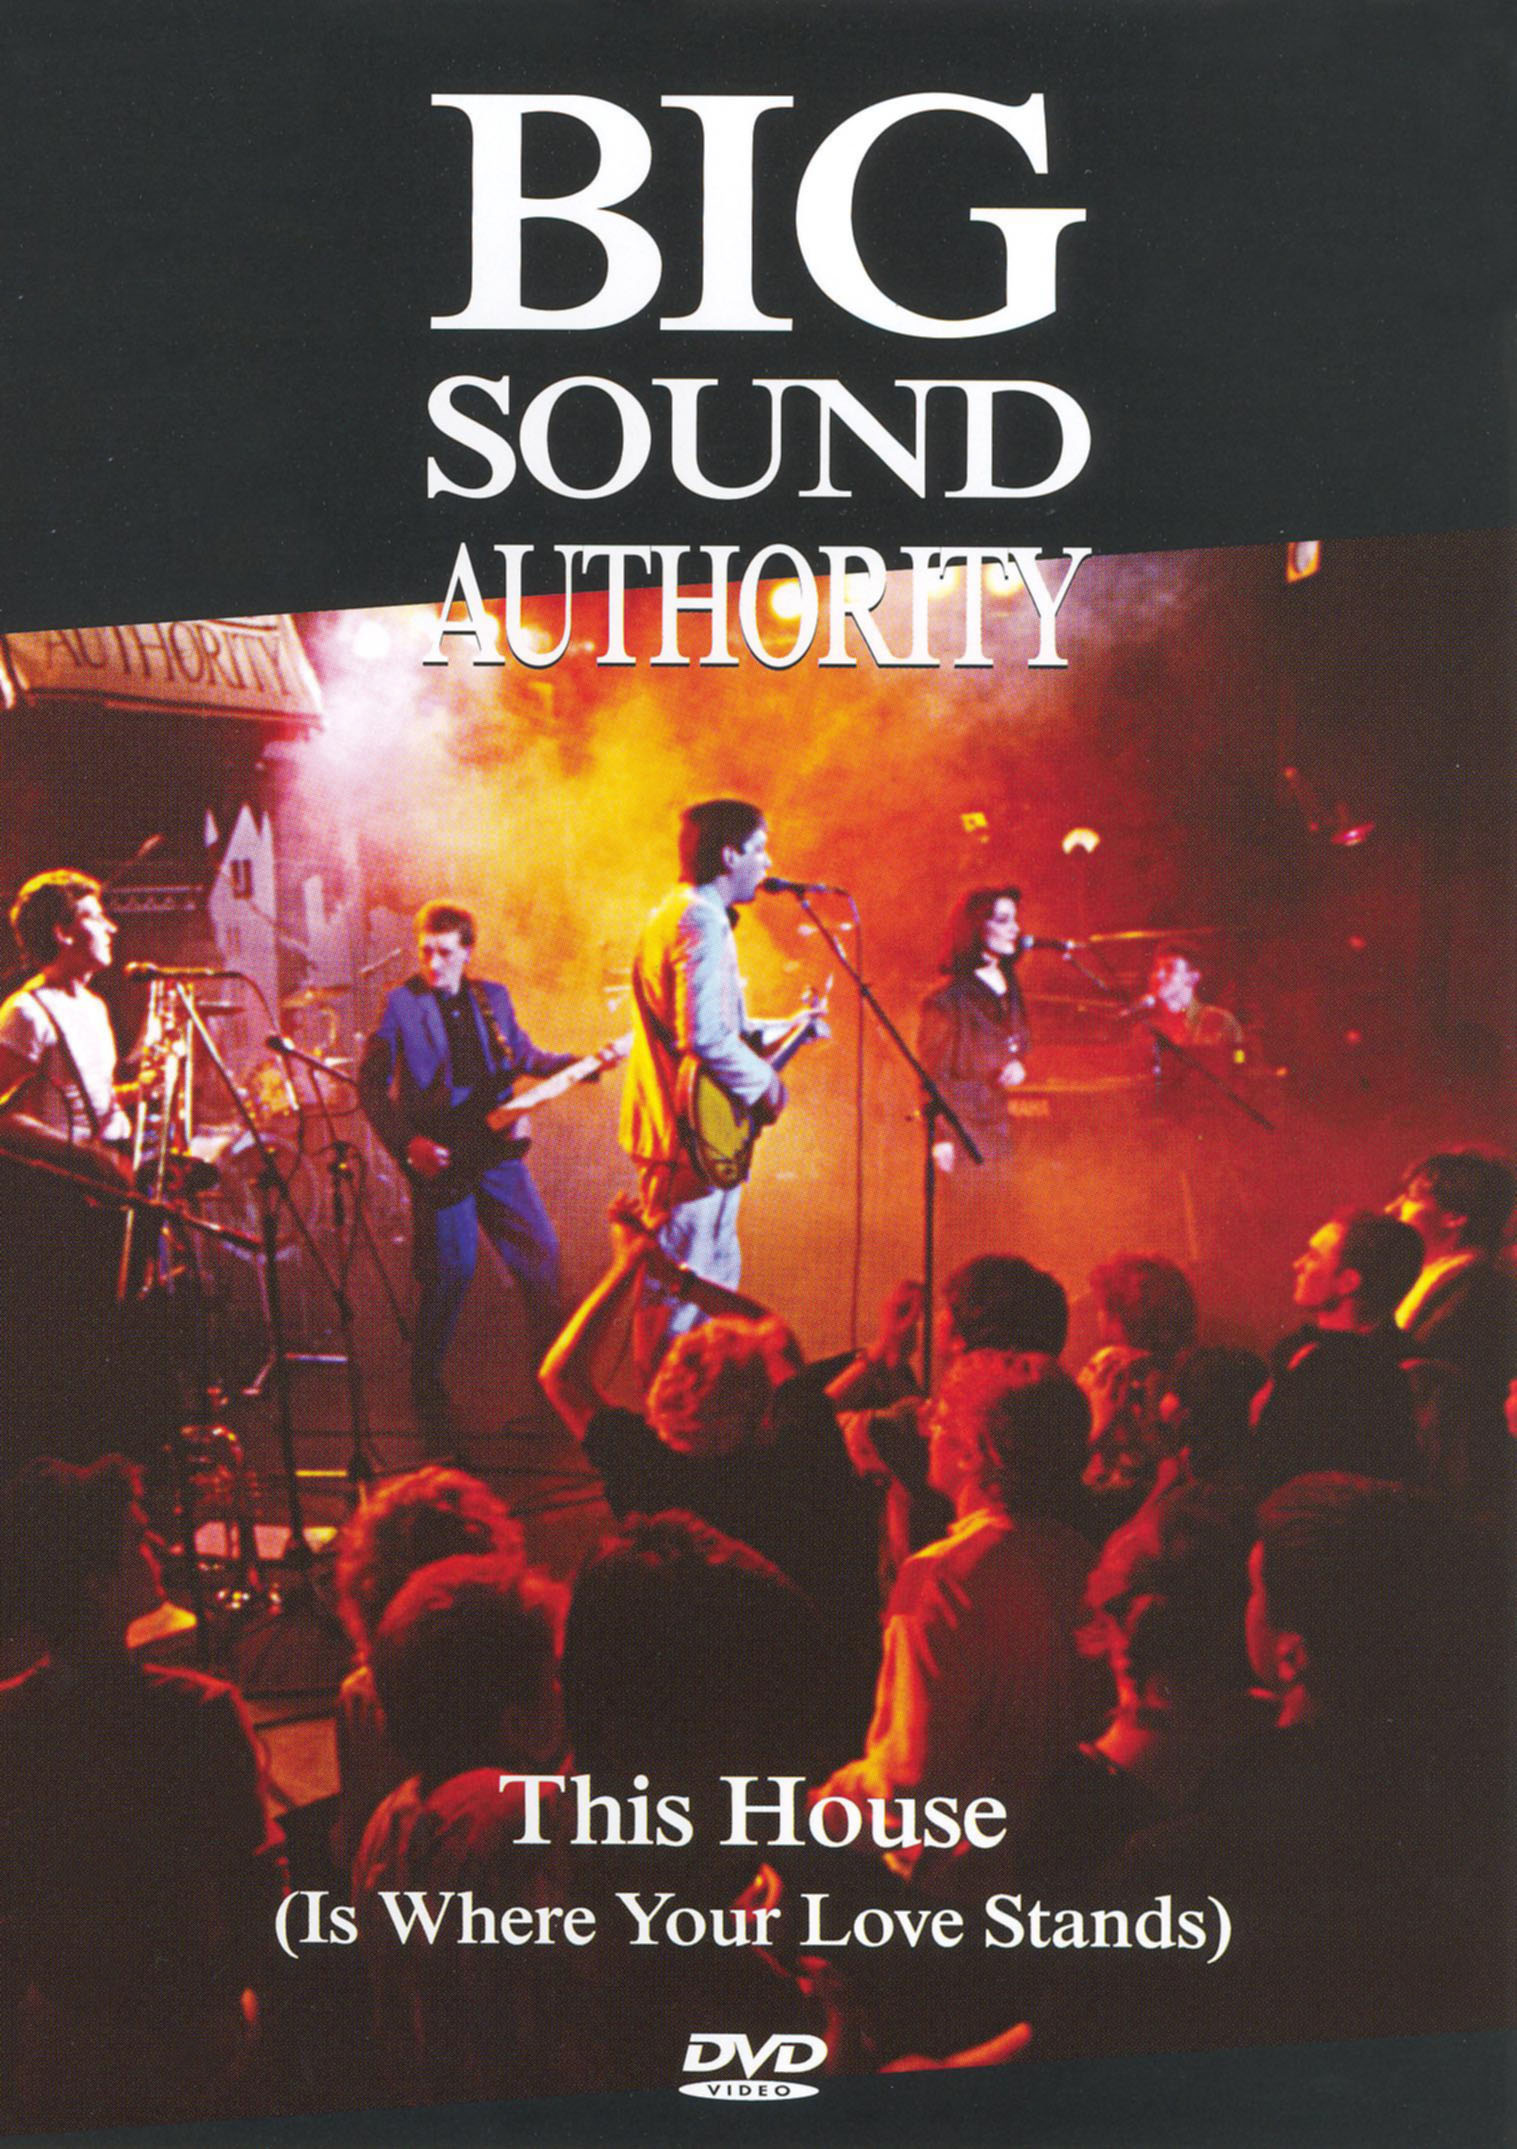 Big Sound Authority: This House Is Where Your Love Stands - Big Sound Authority Live